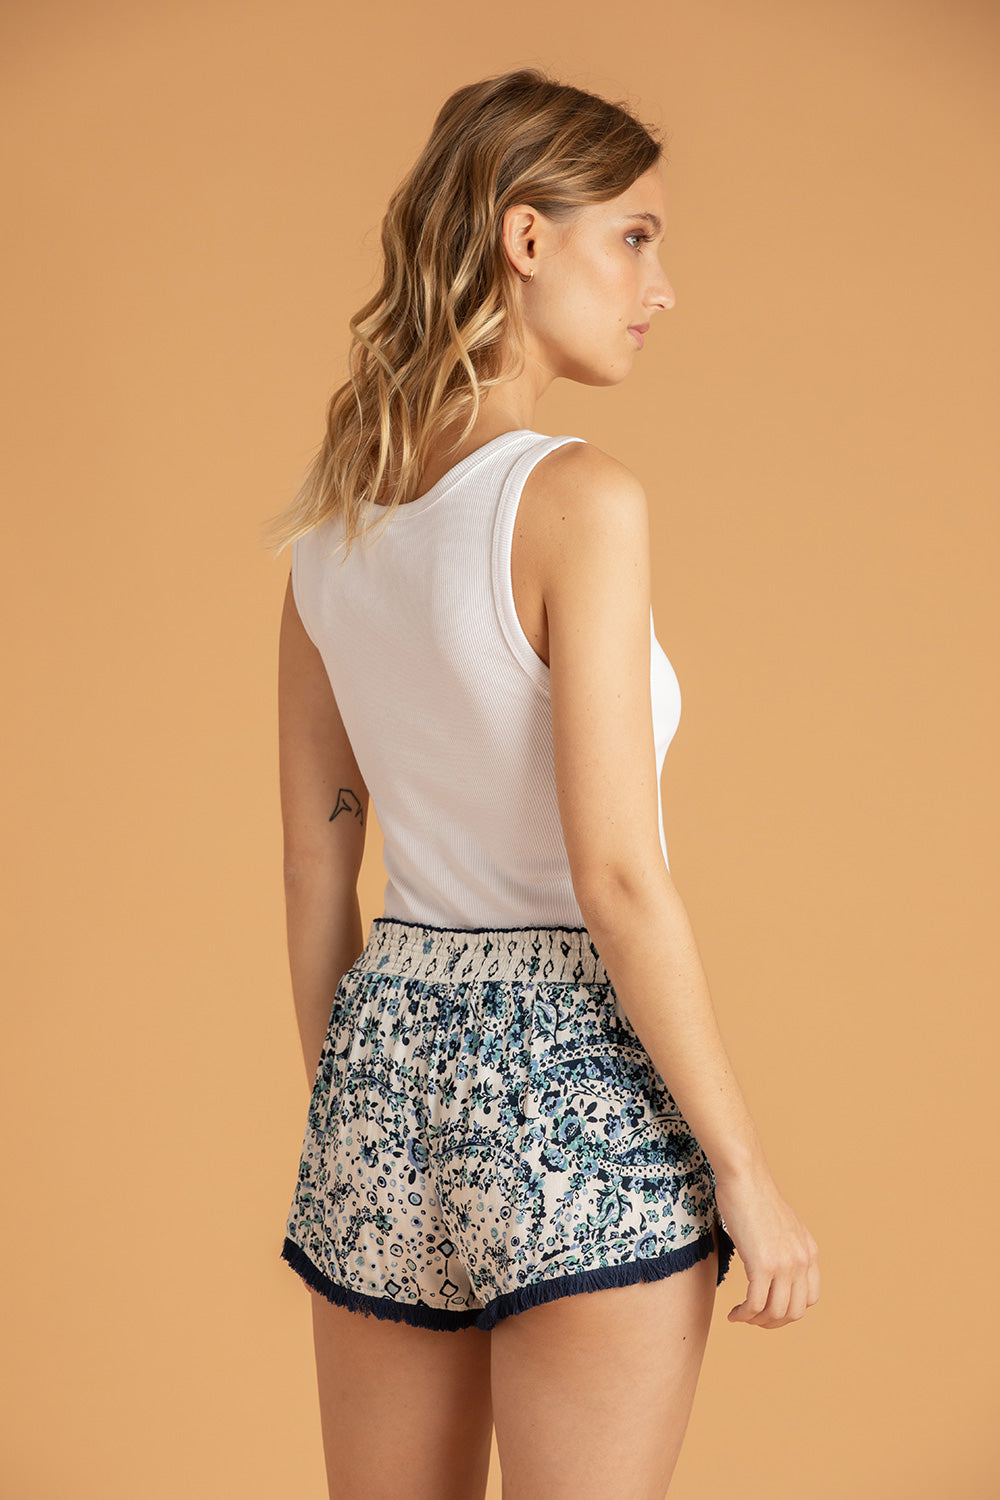 Boxer Short Lulu Lace Trimmed - White Blue Paisley